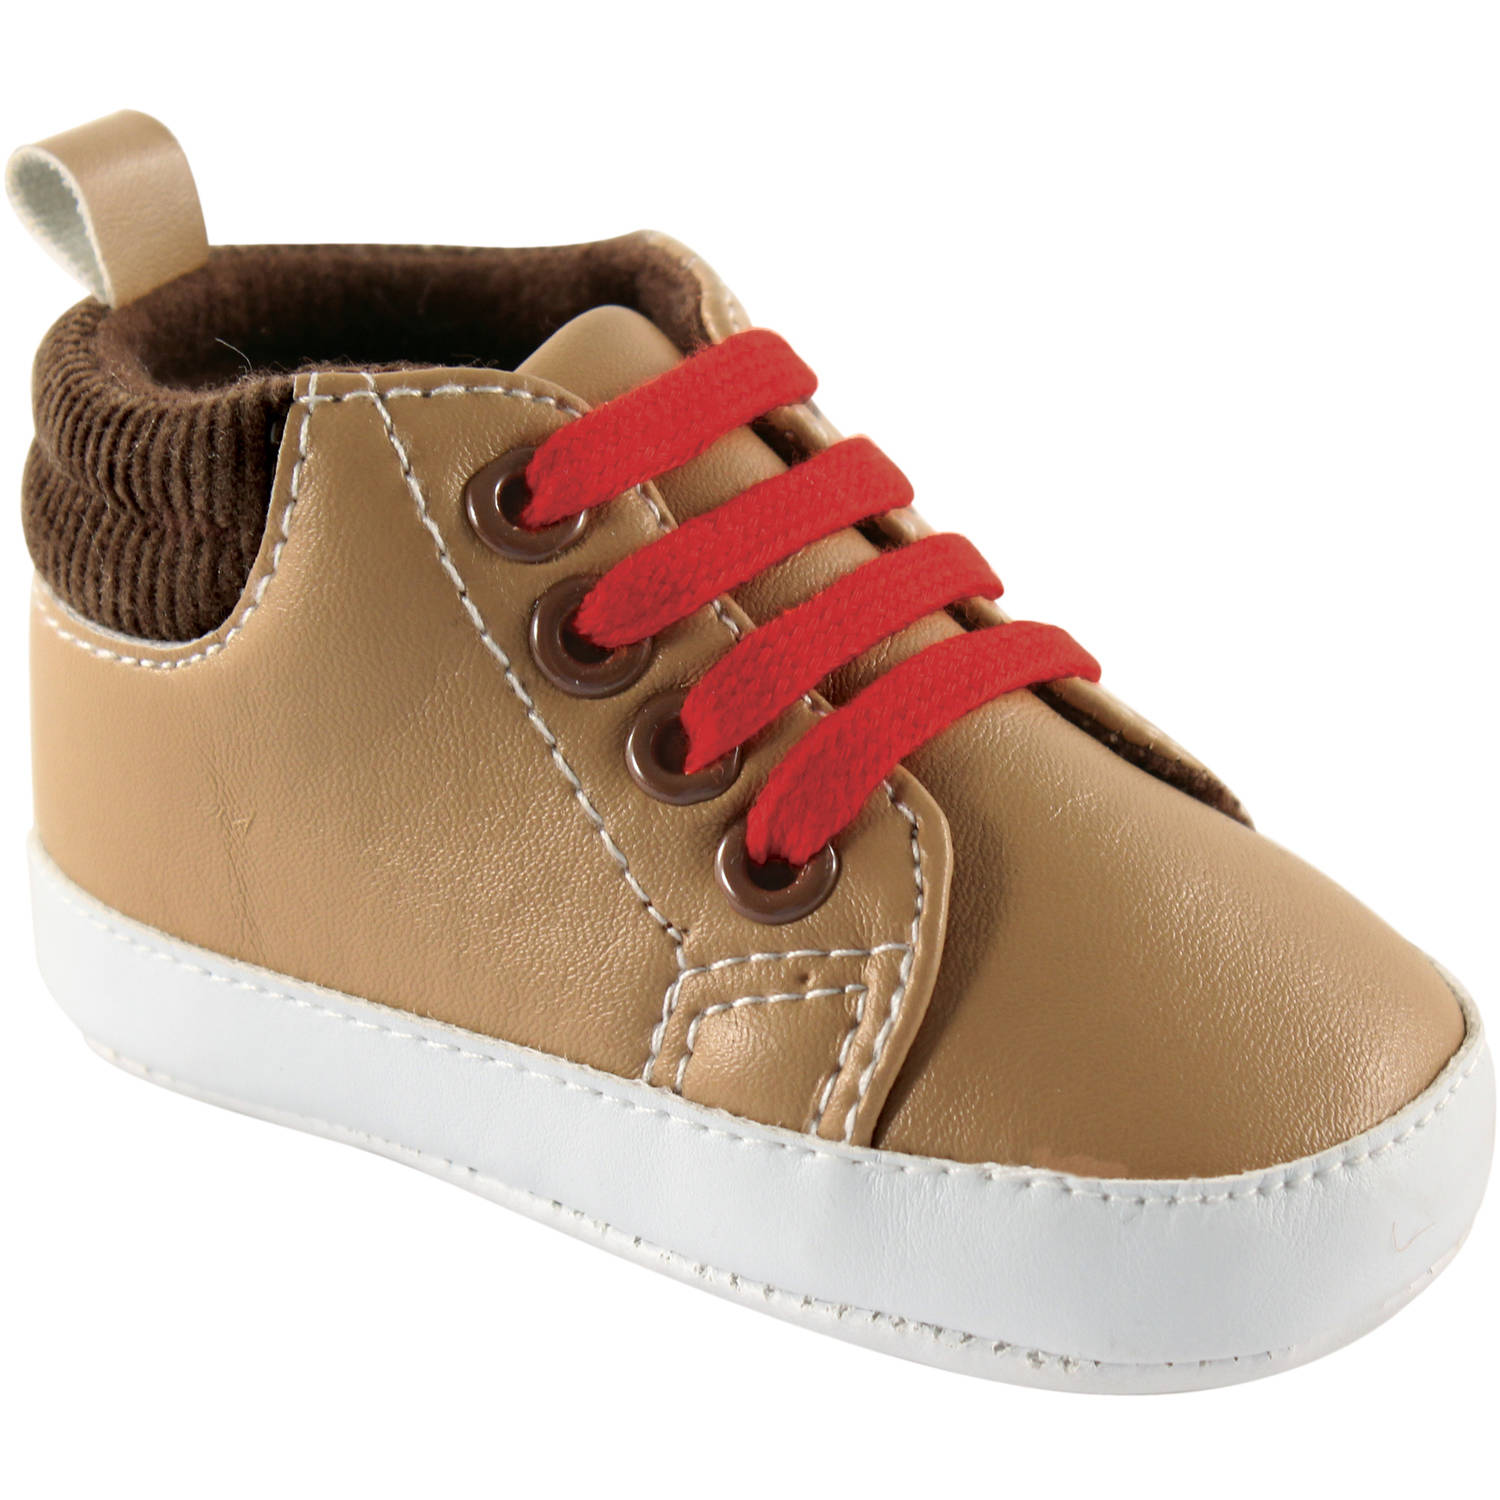 Luvable Friends Newborn Baby Boys High-Top Boots